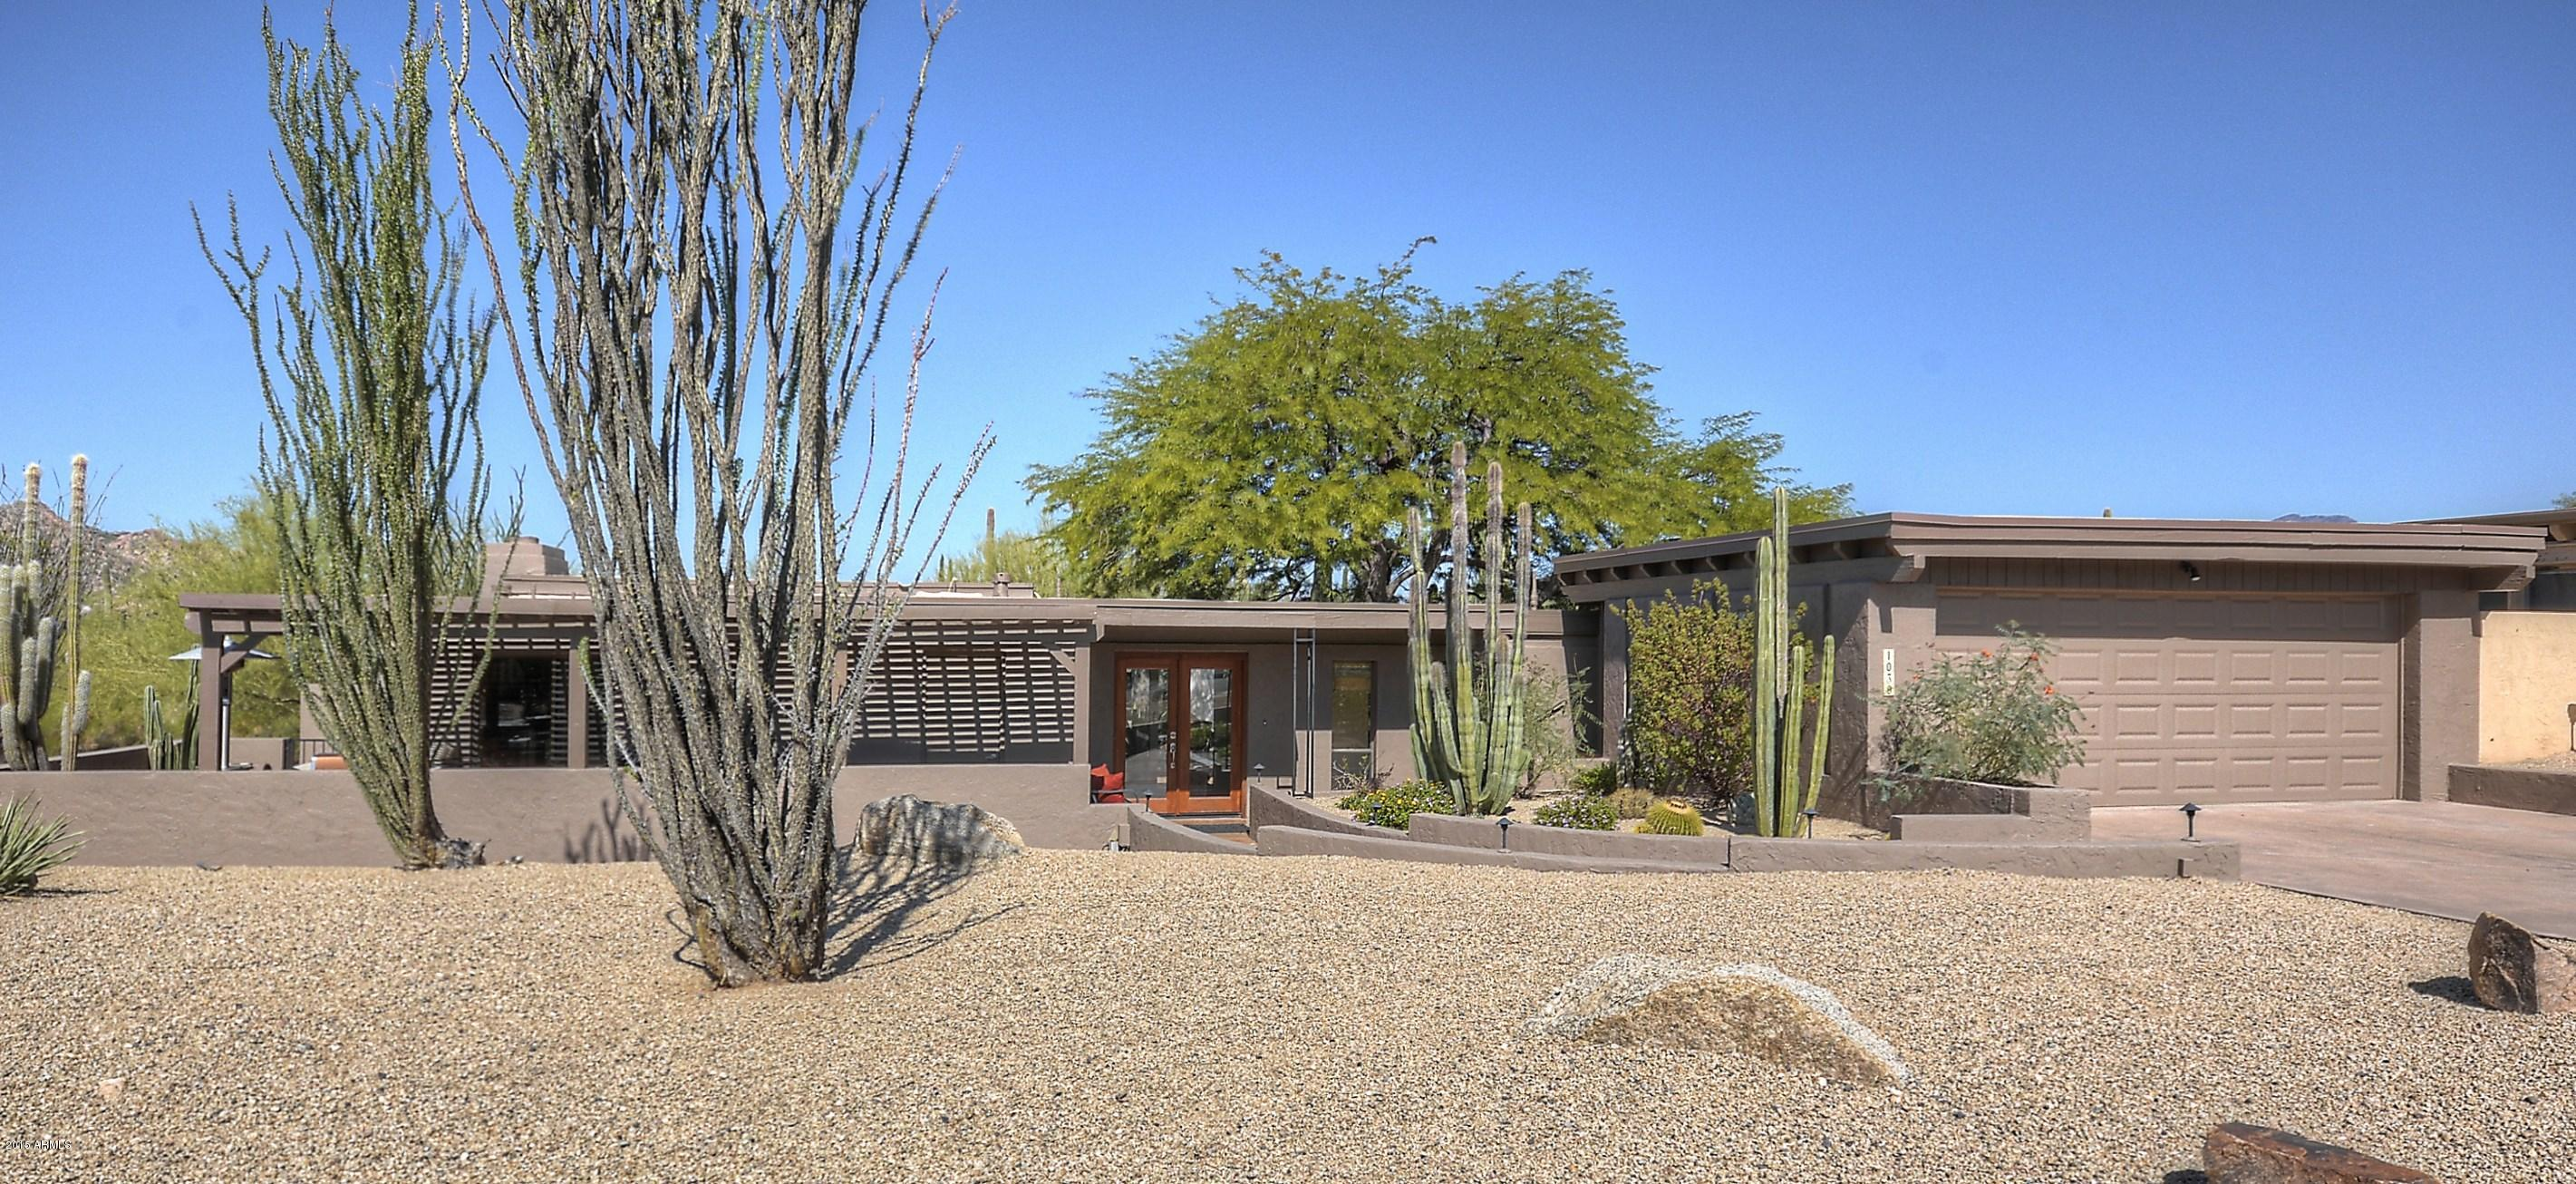 1039 E Boulder Drive, Carefree AZ 85377 - Photo 1